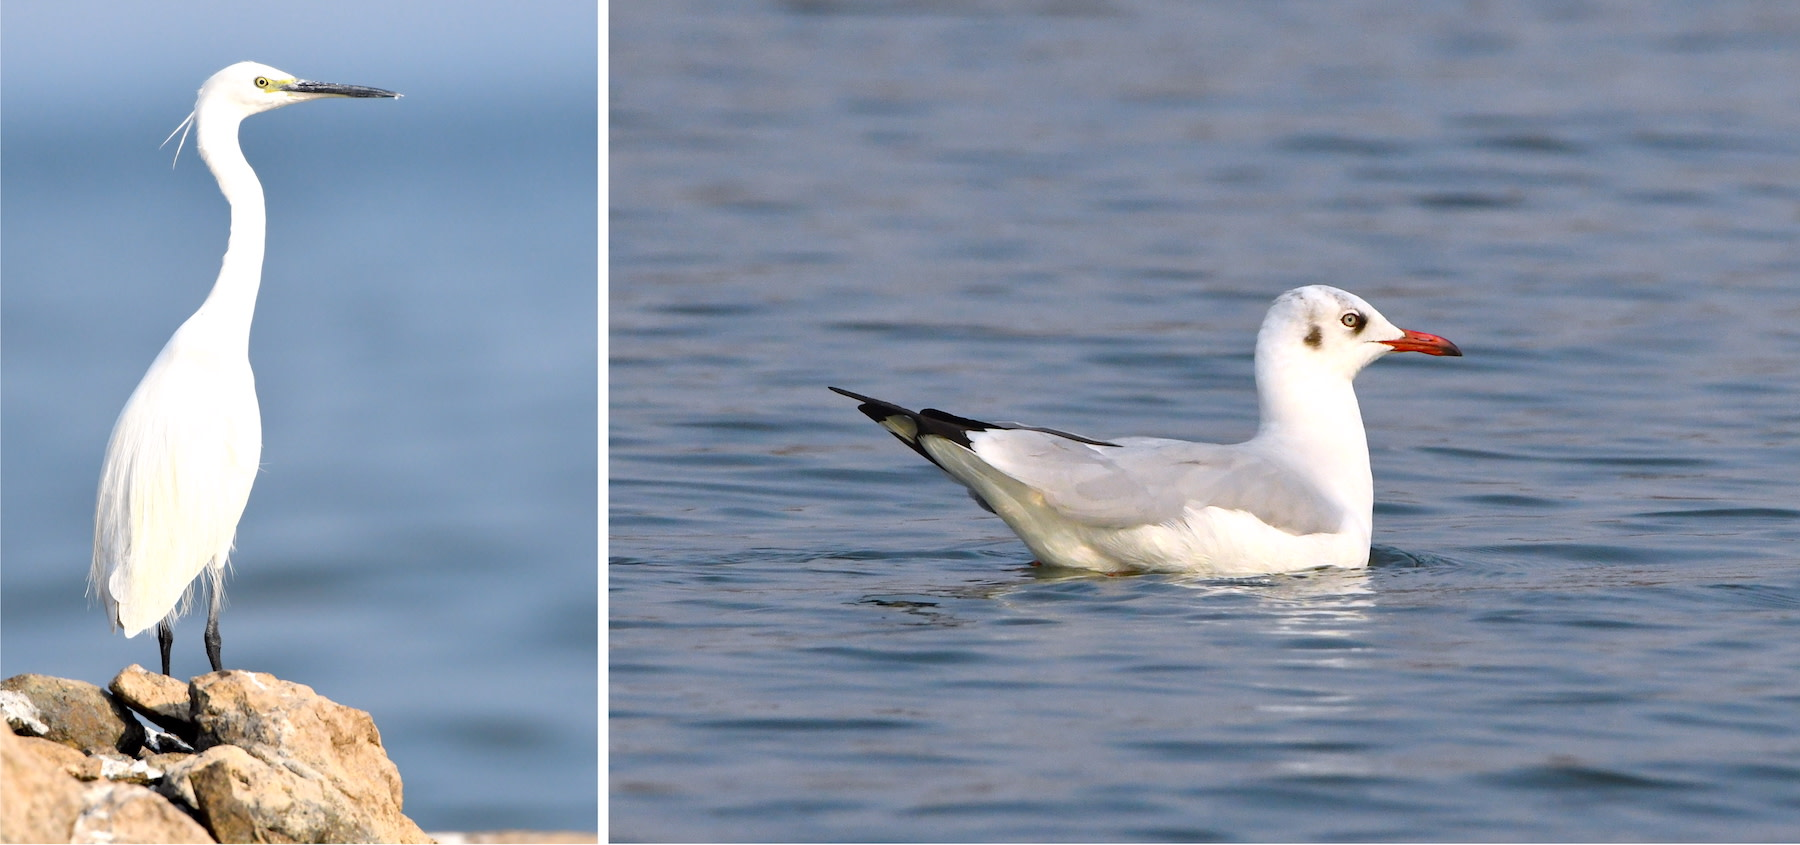 The little egret (left) is a common resident of Bhigwan. A winter migrant, the brown-headed gull (right) is seen here in its non-breeding plumage wearing red lipstick and kohl. Photos: Richa Malhotra